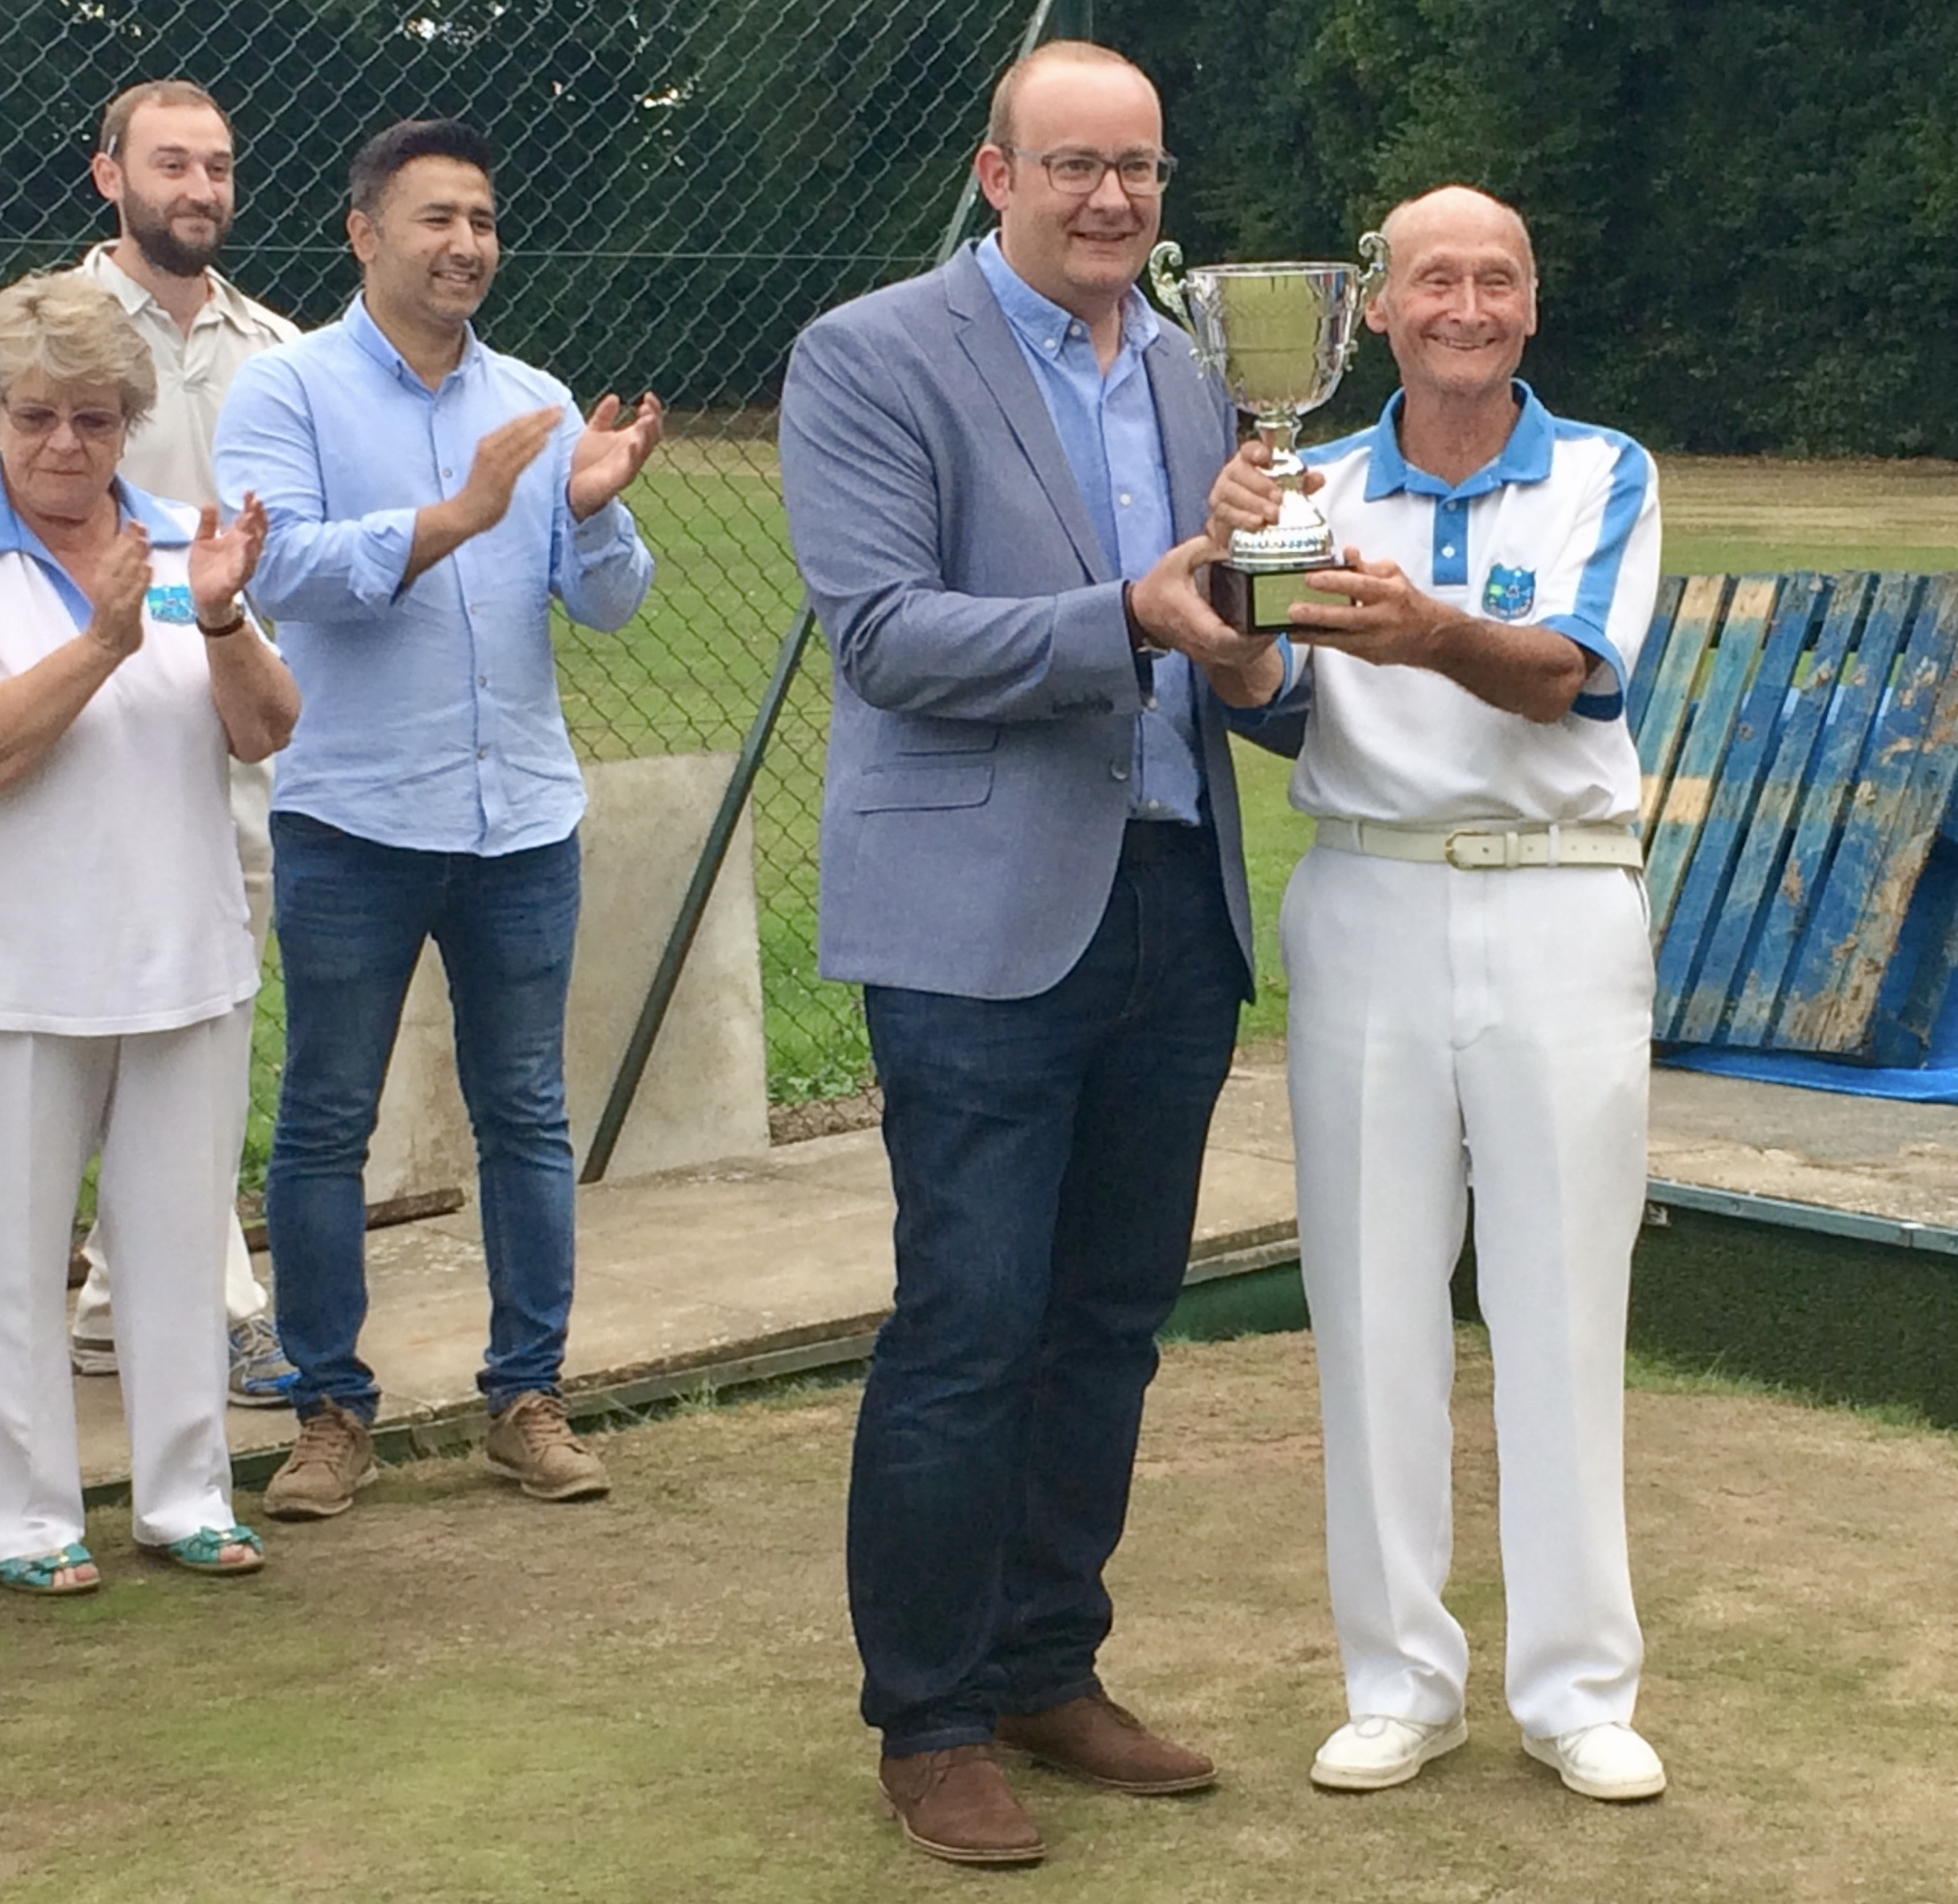 Lodge Brothers Sponsor the 'Jack and Bails' Cup Match at Westfield Bowls Club